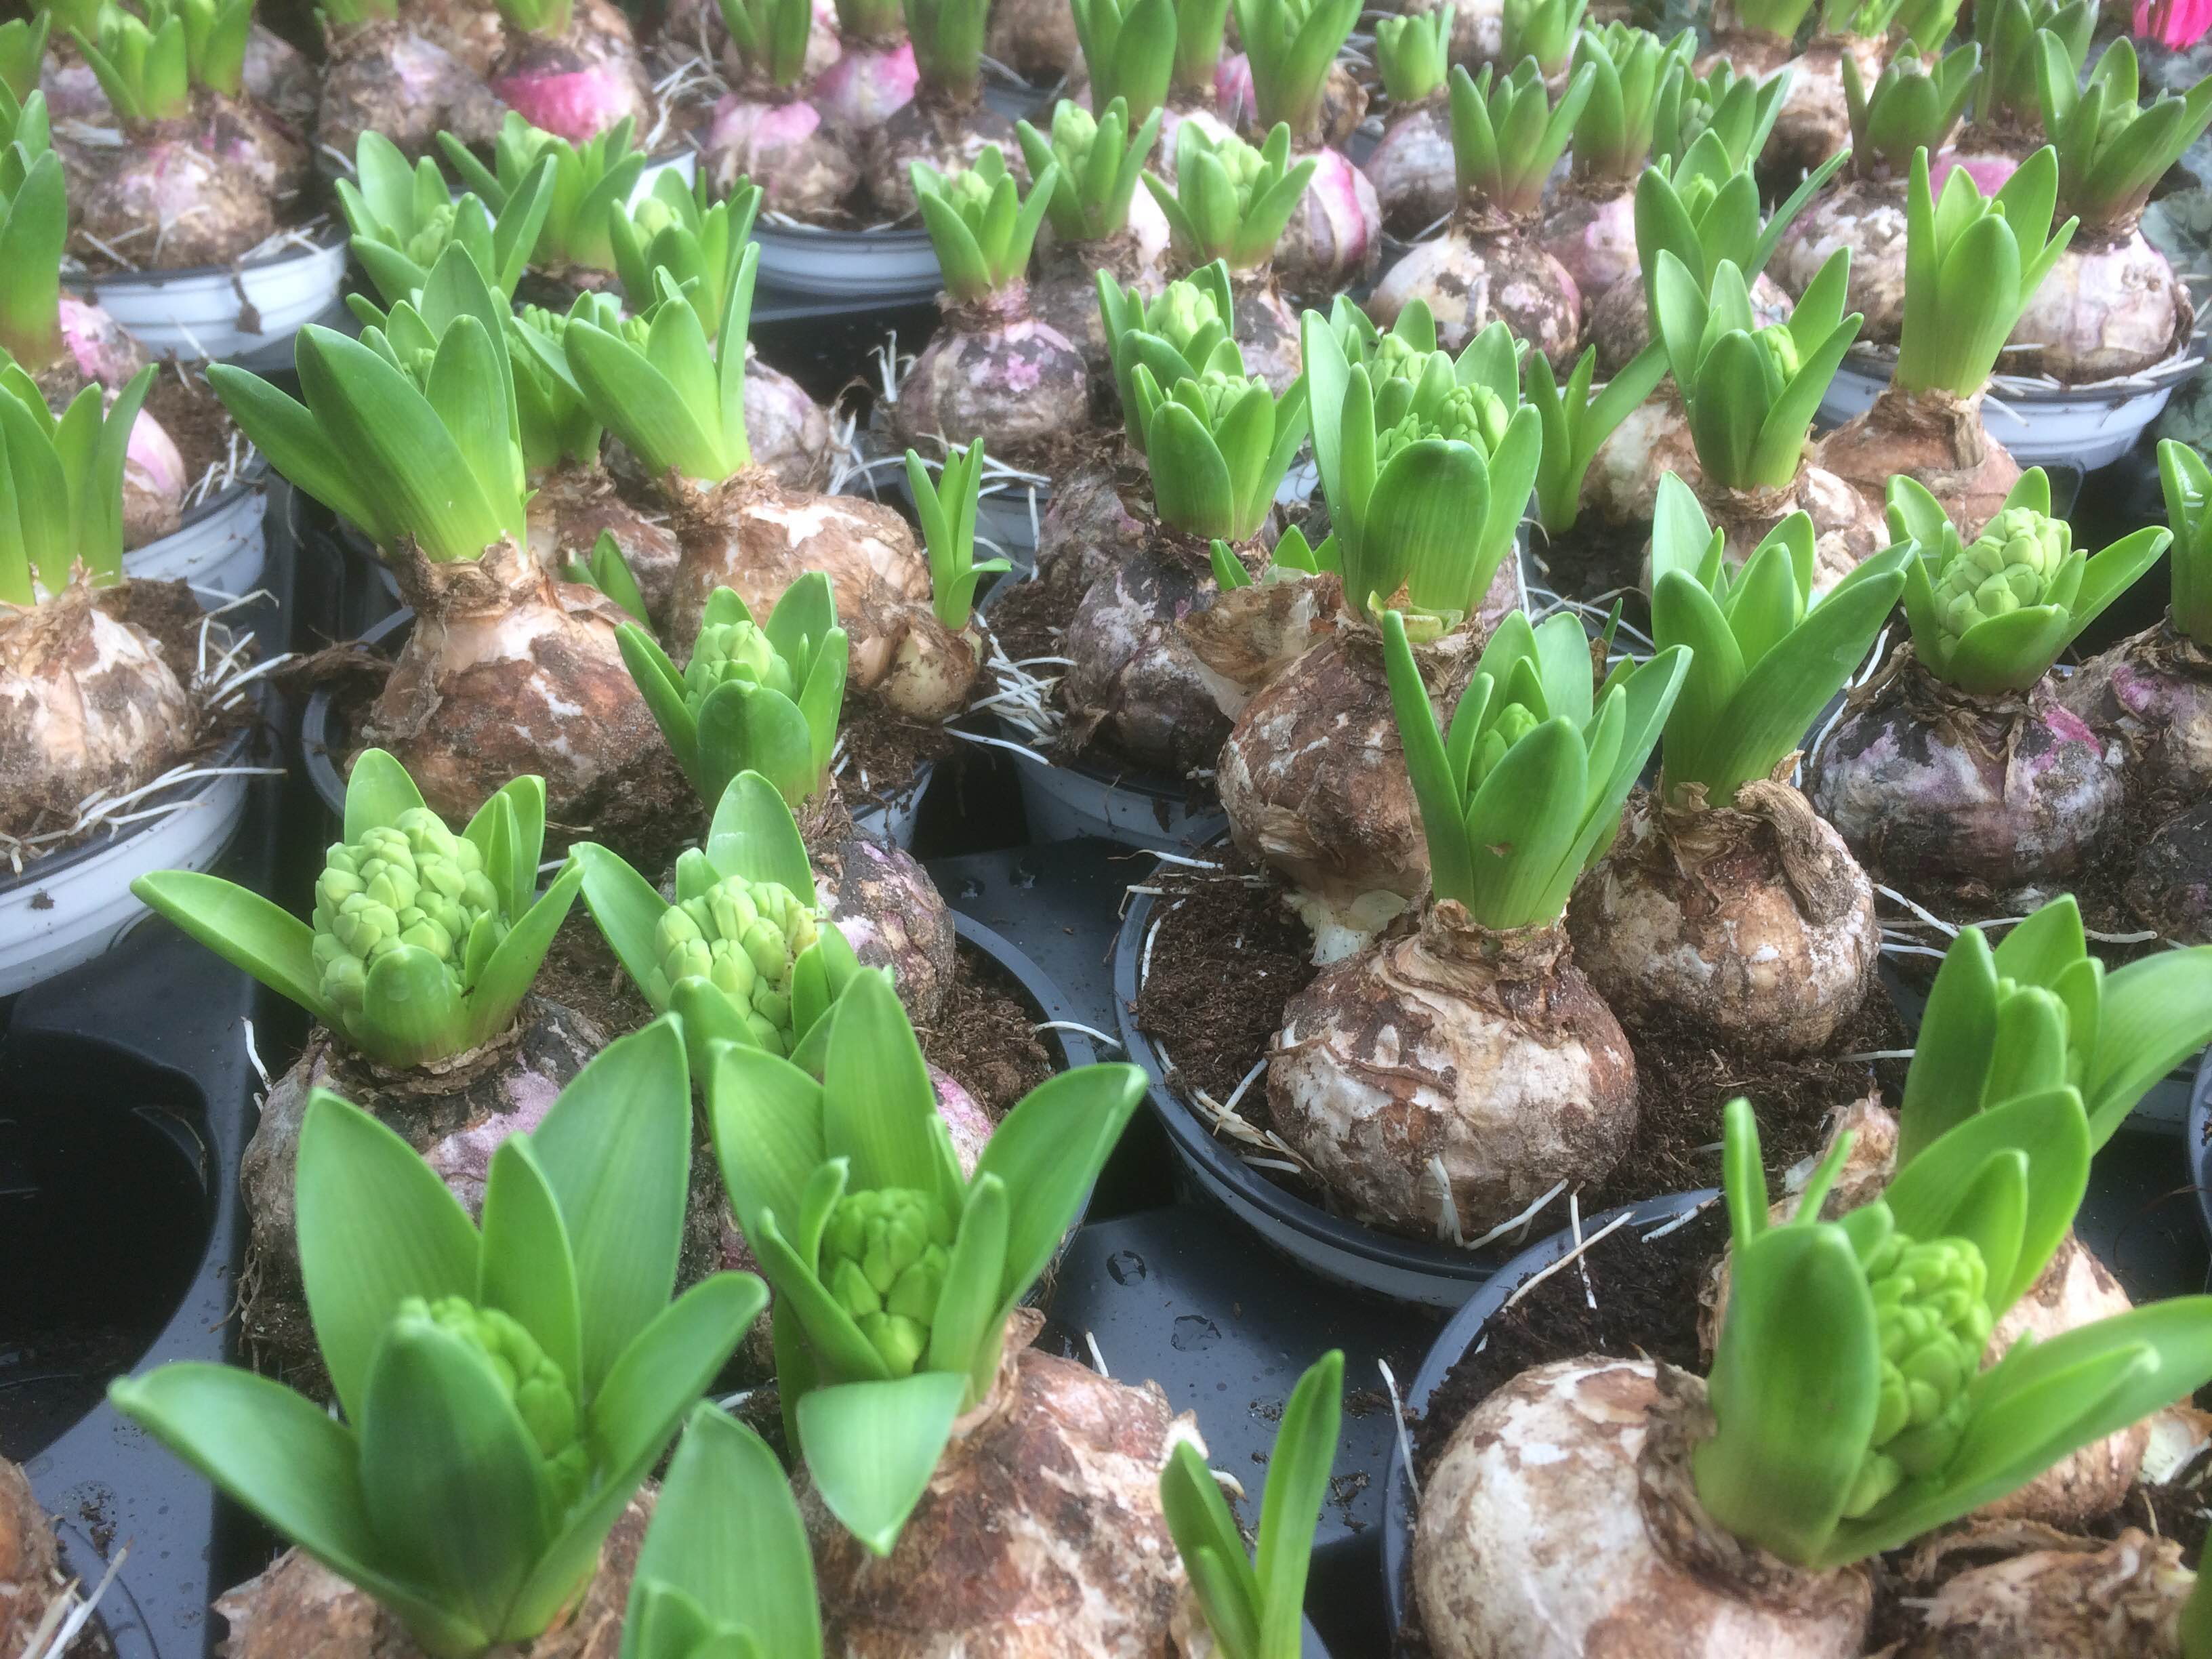 Mesmerizing Mode Sheffield  Whatmodeareyouin With Extraordinary Hyacinth Bulbs   For  Or  Each With Cute Charlies Garden Also Garden Hammocks In Addition Hilton Garden Inn Aberdeen And Octopus Garden Beatles As Well As Pvz Garden Warfare Pc Free Additionally Gardening Services Manchester From Whatmodeareyouincouk With   Extraordinary Mode Sheffield  Whatmodeareyouin With Cute Hyacinth Bulbs   For  Or  Each And Mesmerizing Charlies Garden Also Garden Hammocks In Addition Hilton Garden Inn Aberdeen From Whatmodeareyouincouk